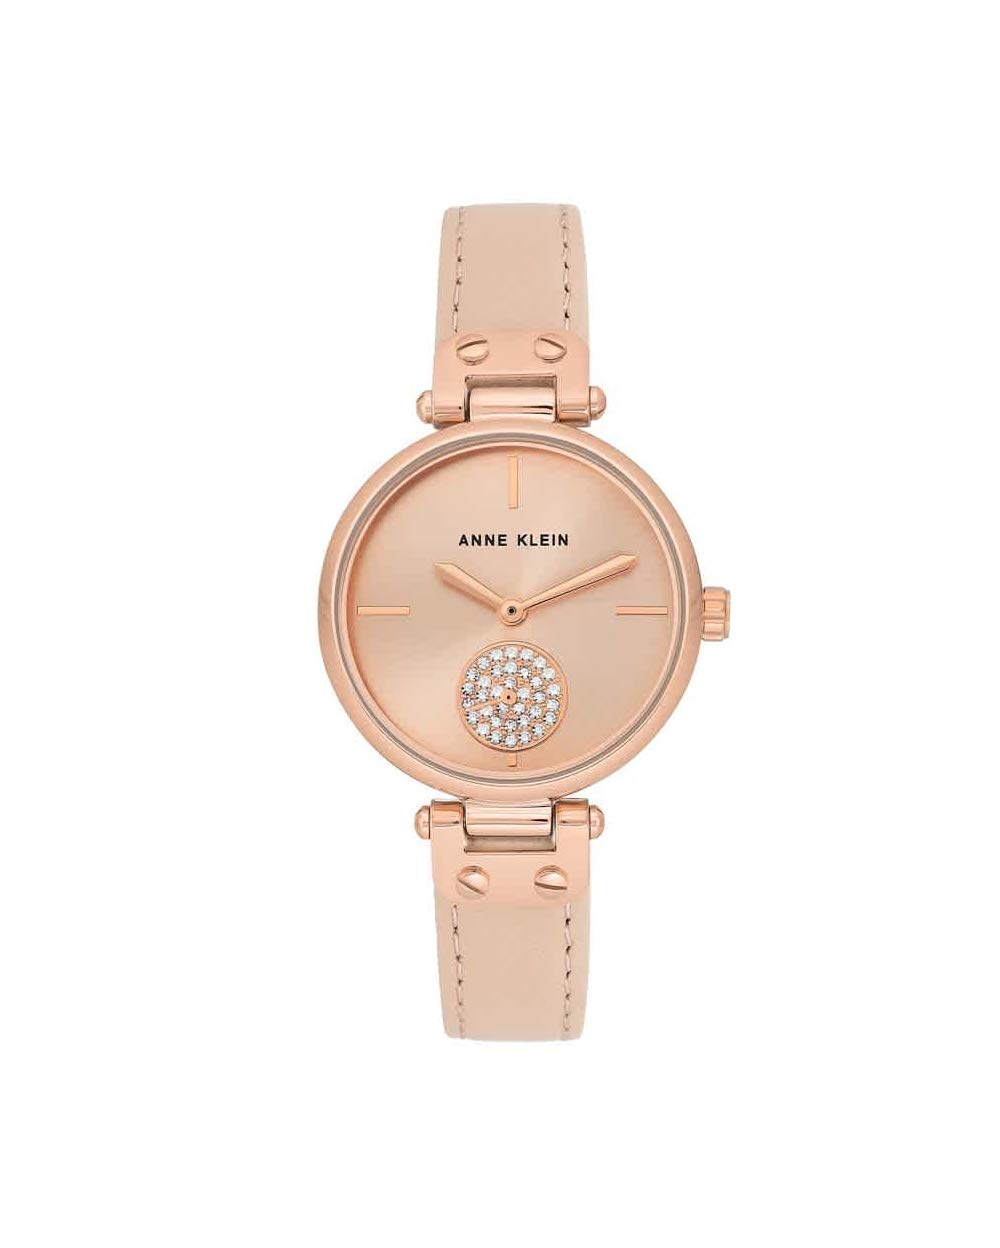 Anne Klein Women's AK/3380RGLP Swarovski Crystal Accented Rose Gold-Tone and Blush Pink Leather Strap Watch by Anne Klein